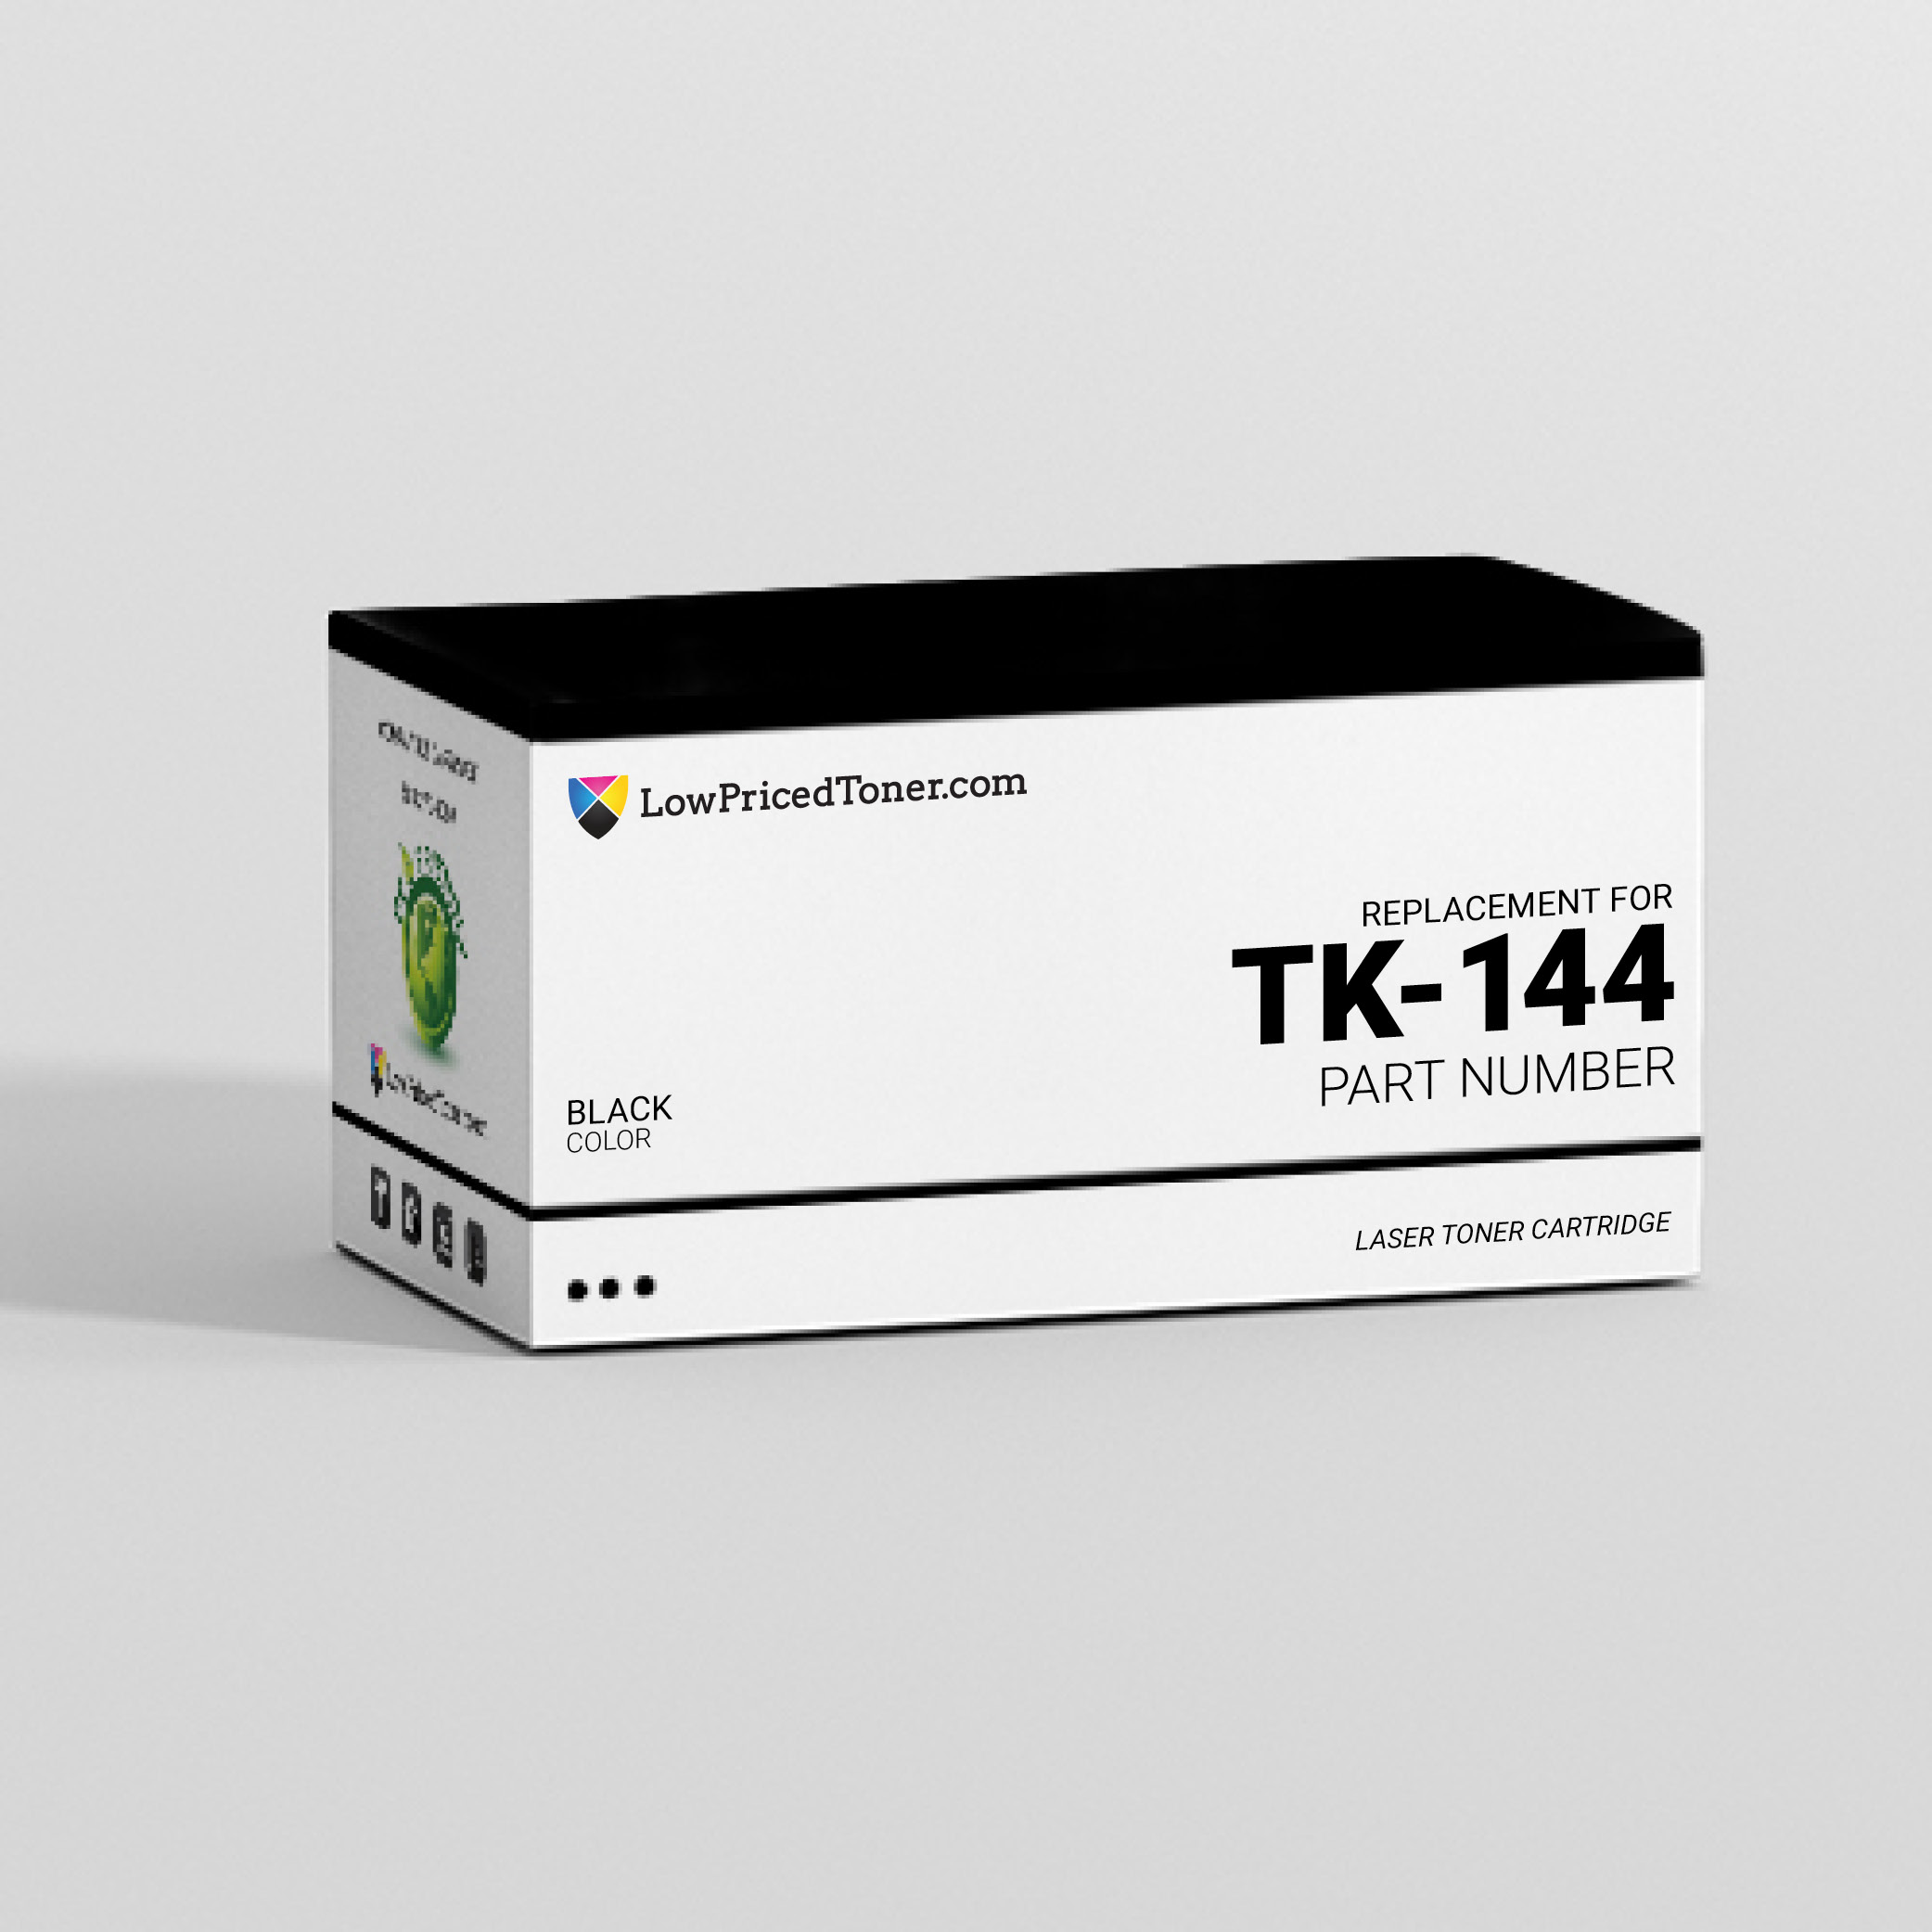 Kyocera Mita TK-144 Compatible Black Laser Toner Cartridge